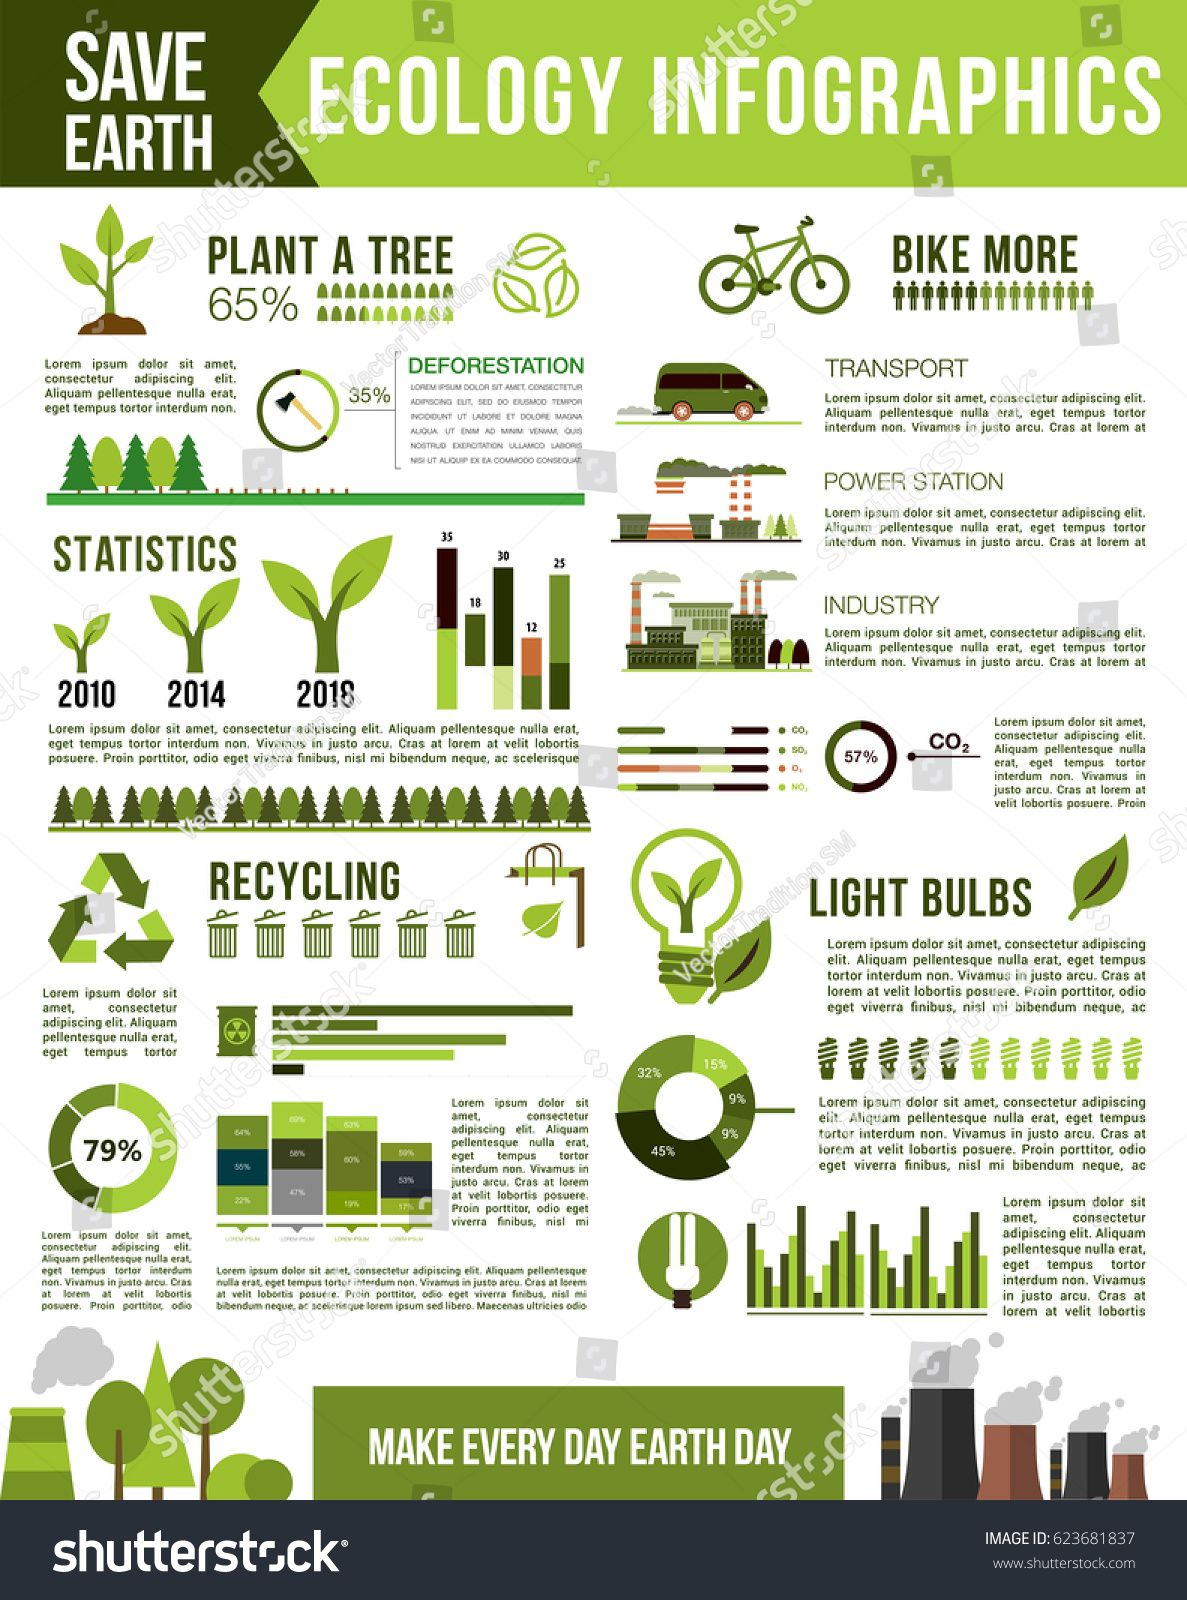 Ecology and nature conservation infographic. Air pollution